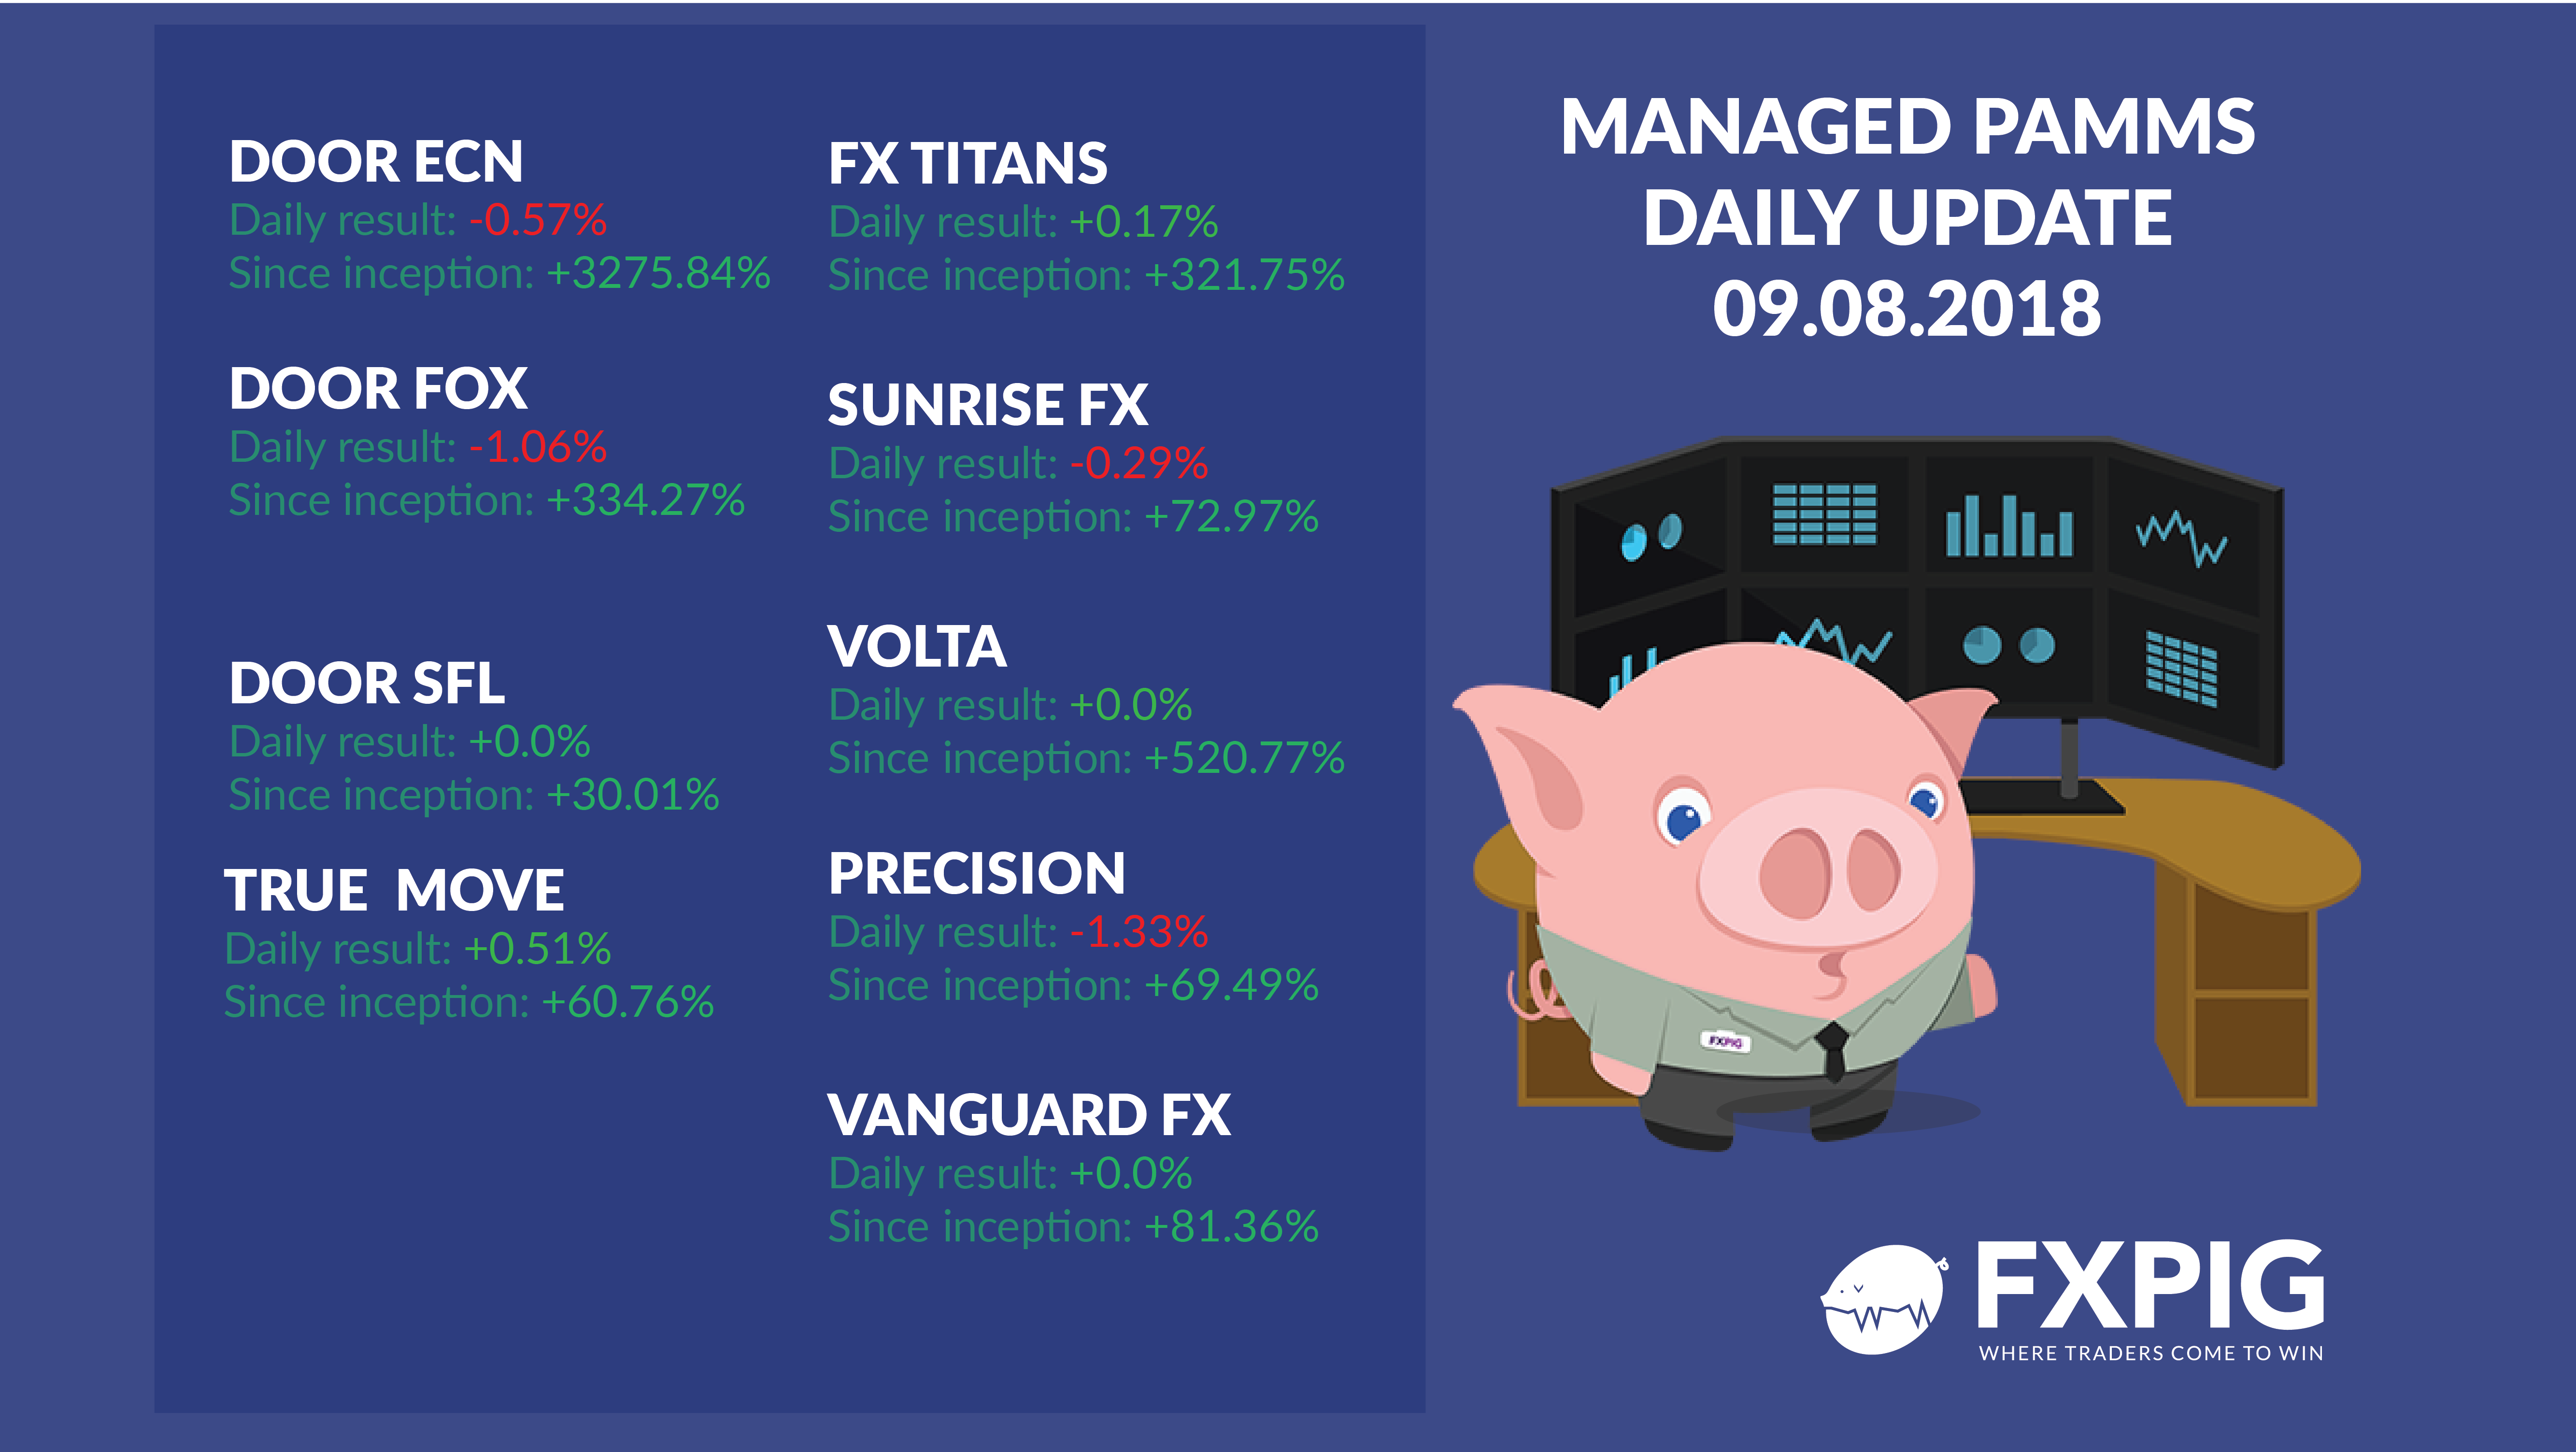 FOREX_managed-daily-accounts-0908_FXPIG